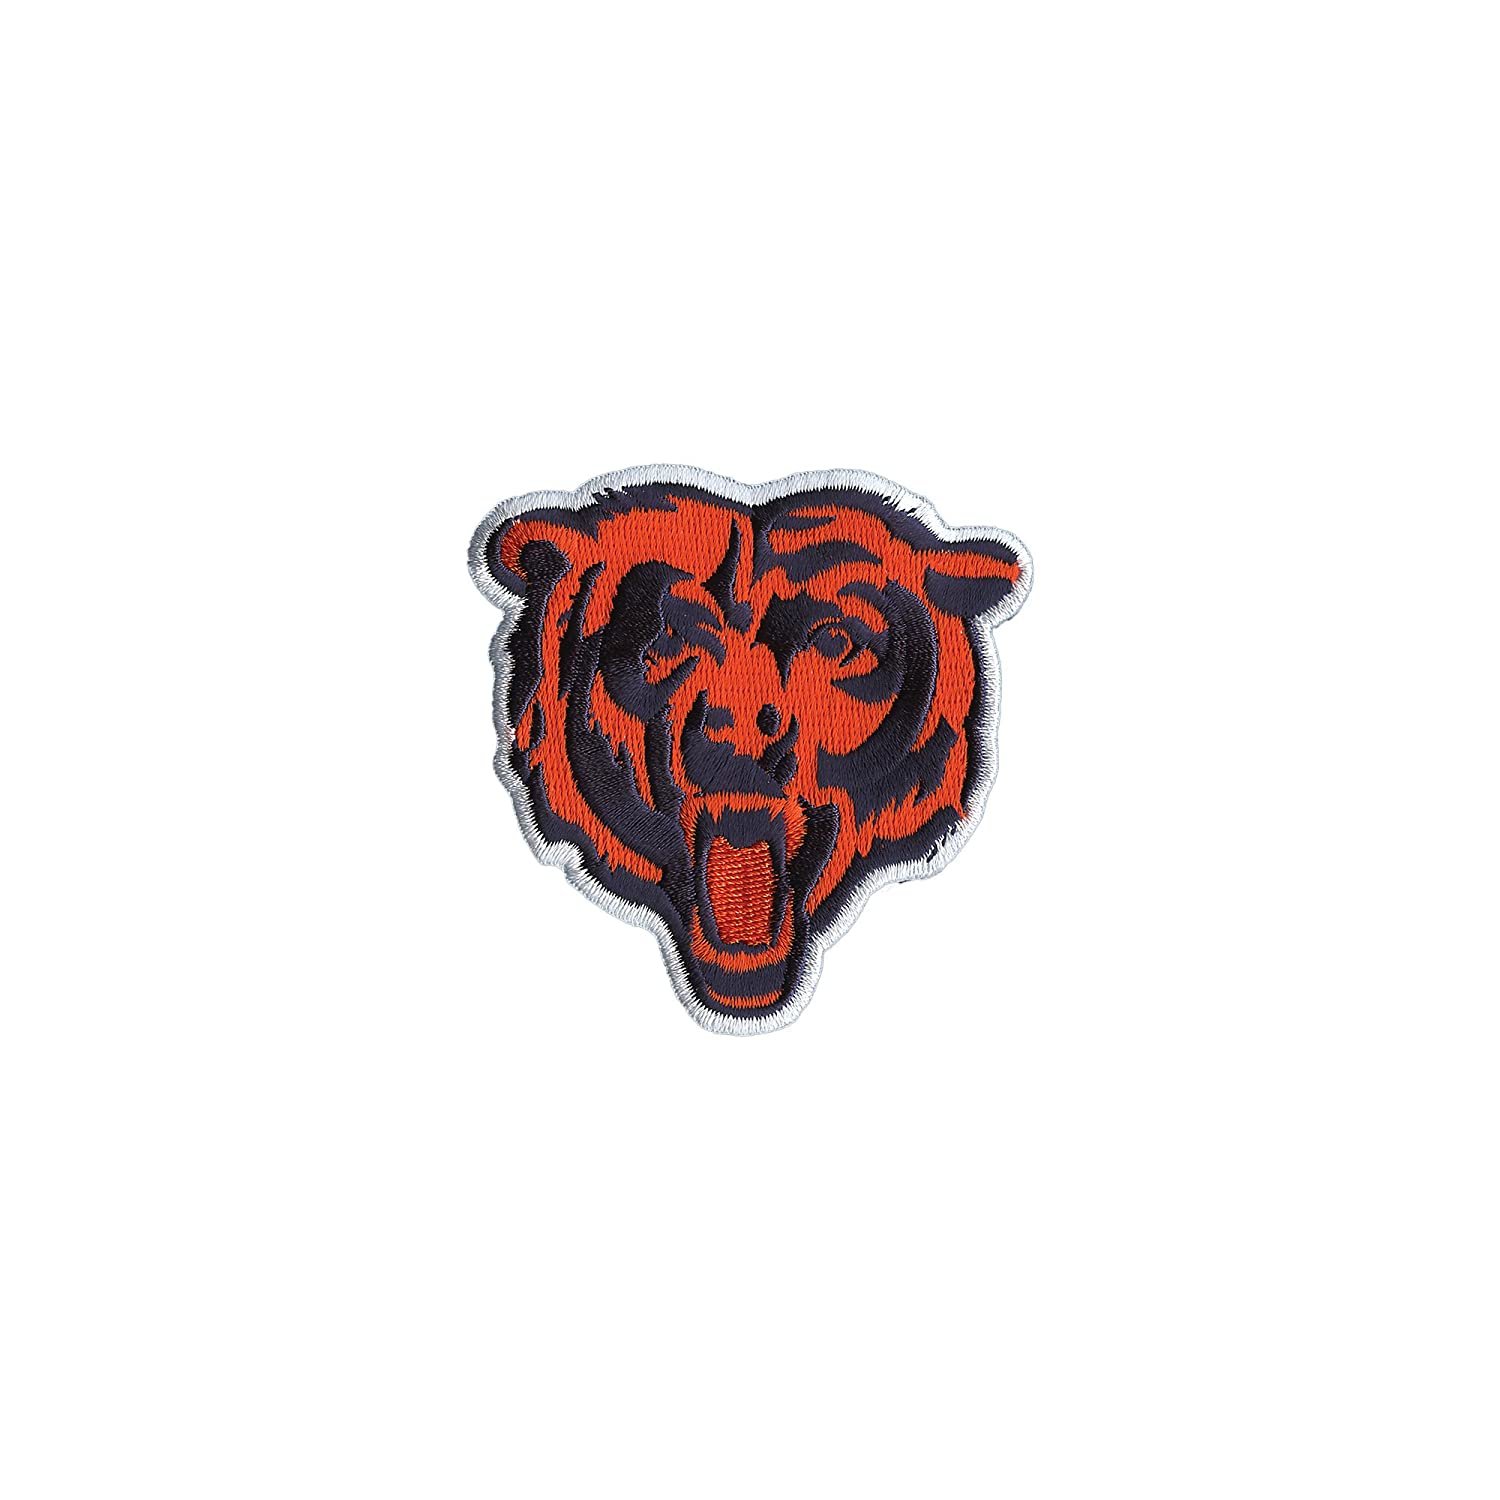 Tervis 1062470 NFL Chicago Bears Bear Tumbler with Emblem and Orange Lid 16oz Mug Clear